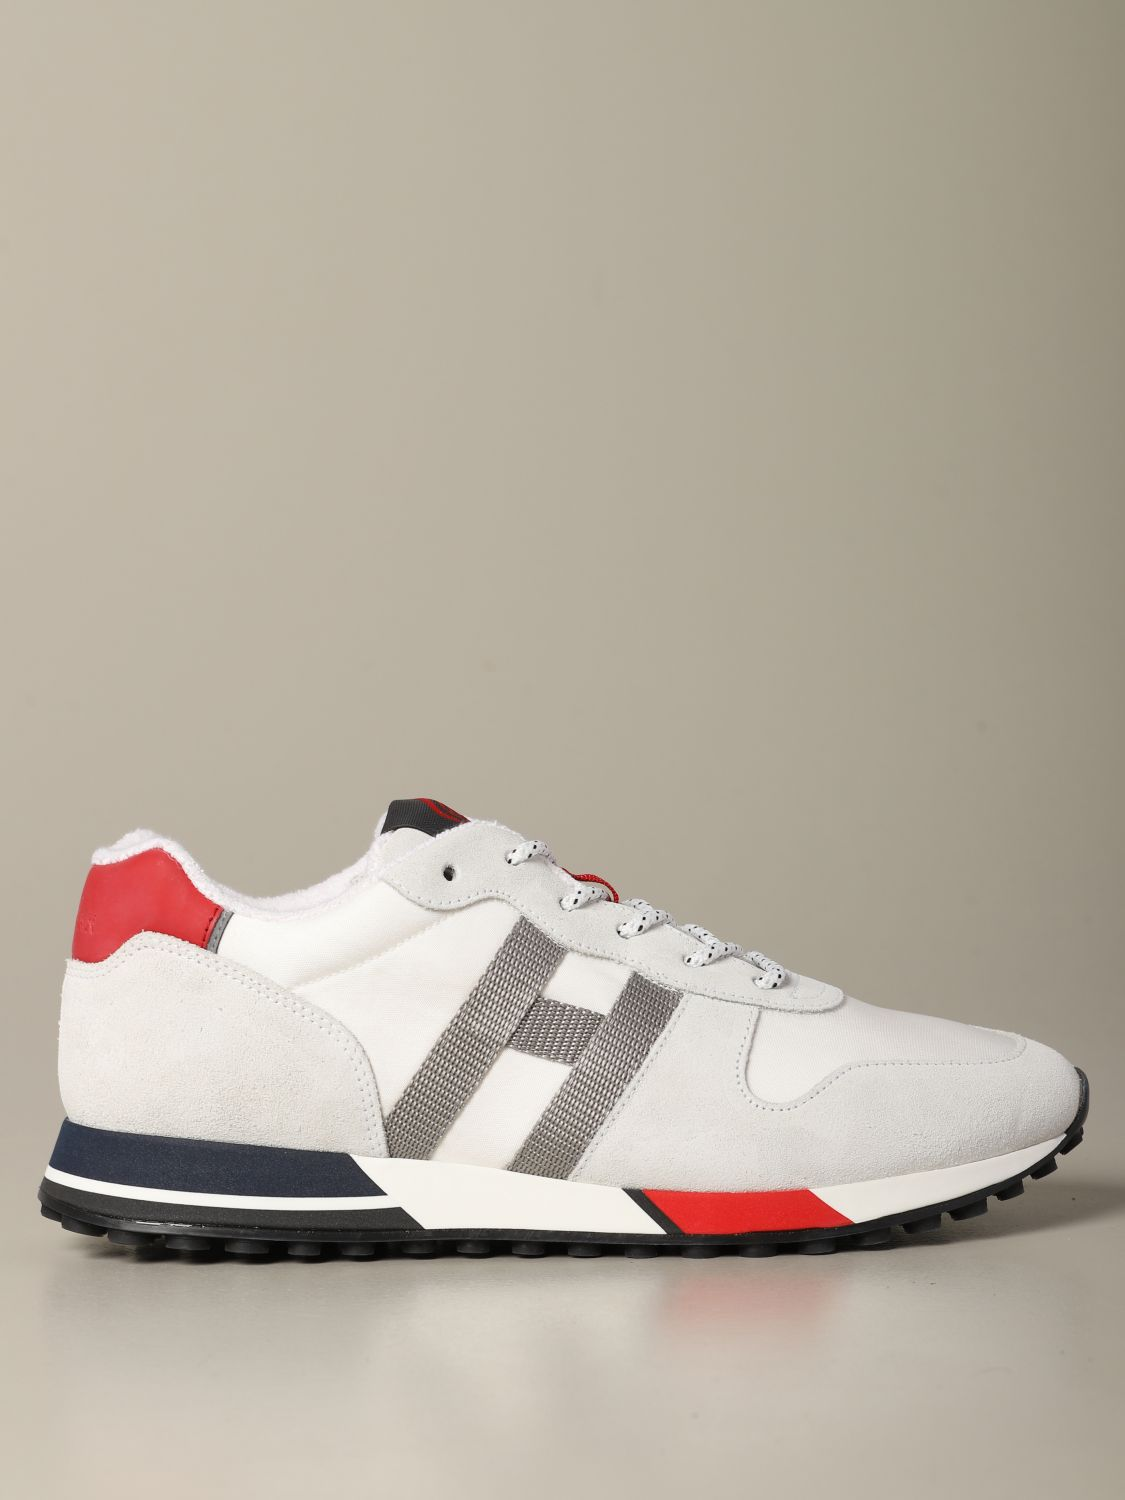 Sneakers H383 Hogan In Pelle E Camoscio Sneakers Hogan Uomo Bianco Sneakers Hogan Hxm3830an51 Nrv Giglio It